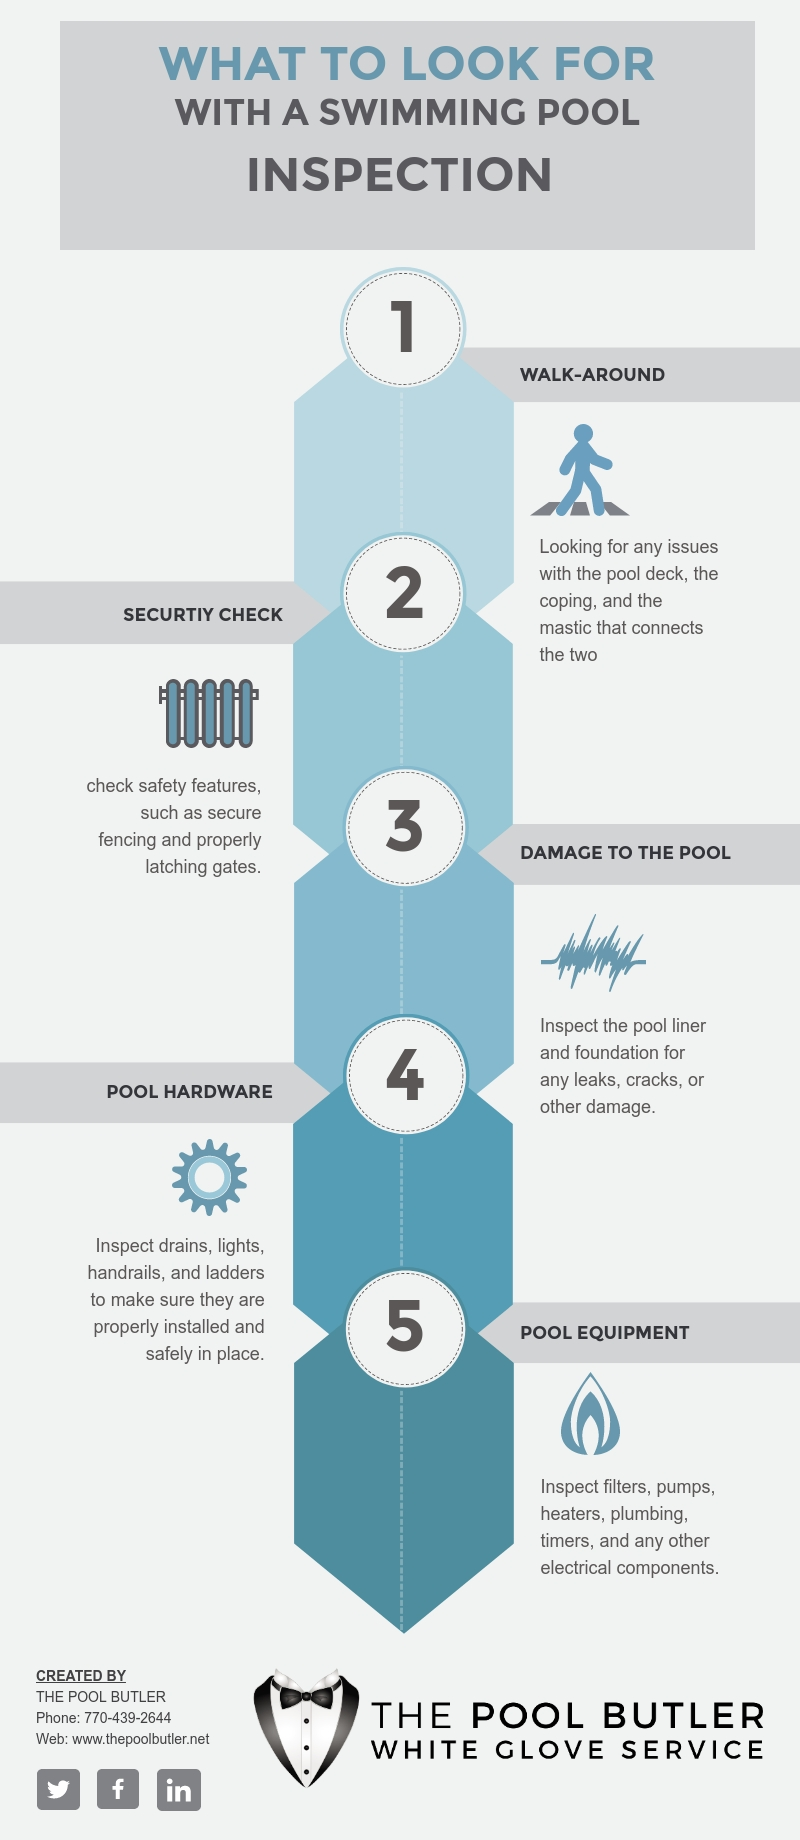 What To Look For With a Pool Inspection [infographic]